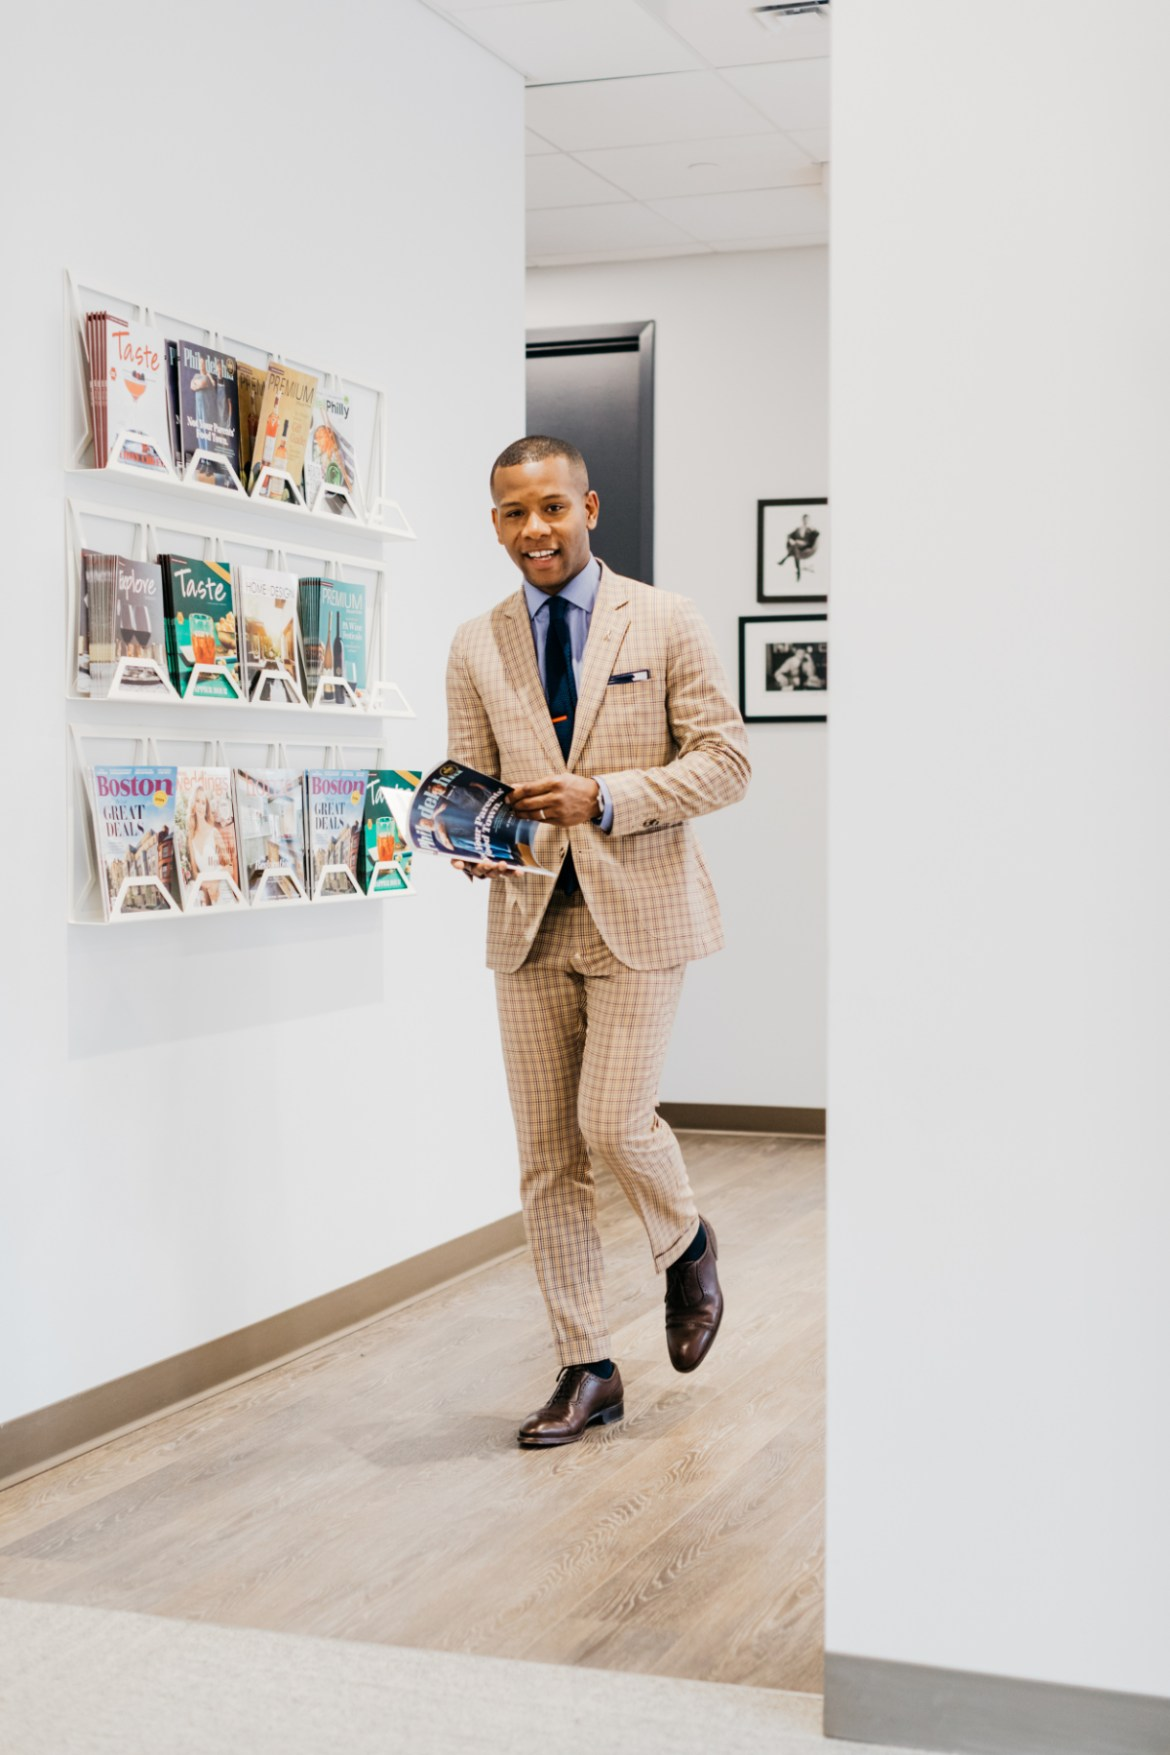 Sabir M. Peele of Men's Style Pro at Philly Mag Office wearing Lido Suit via ModaMatters